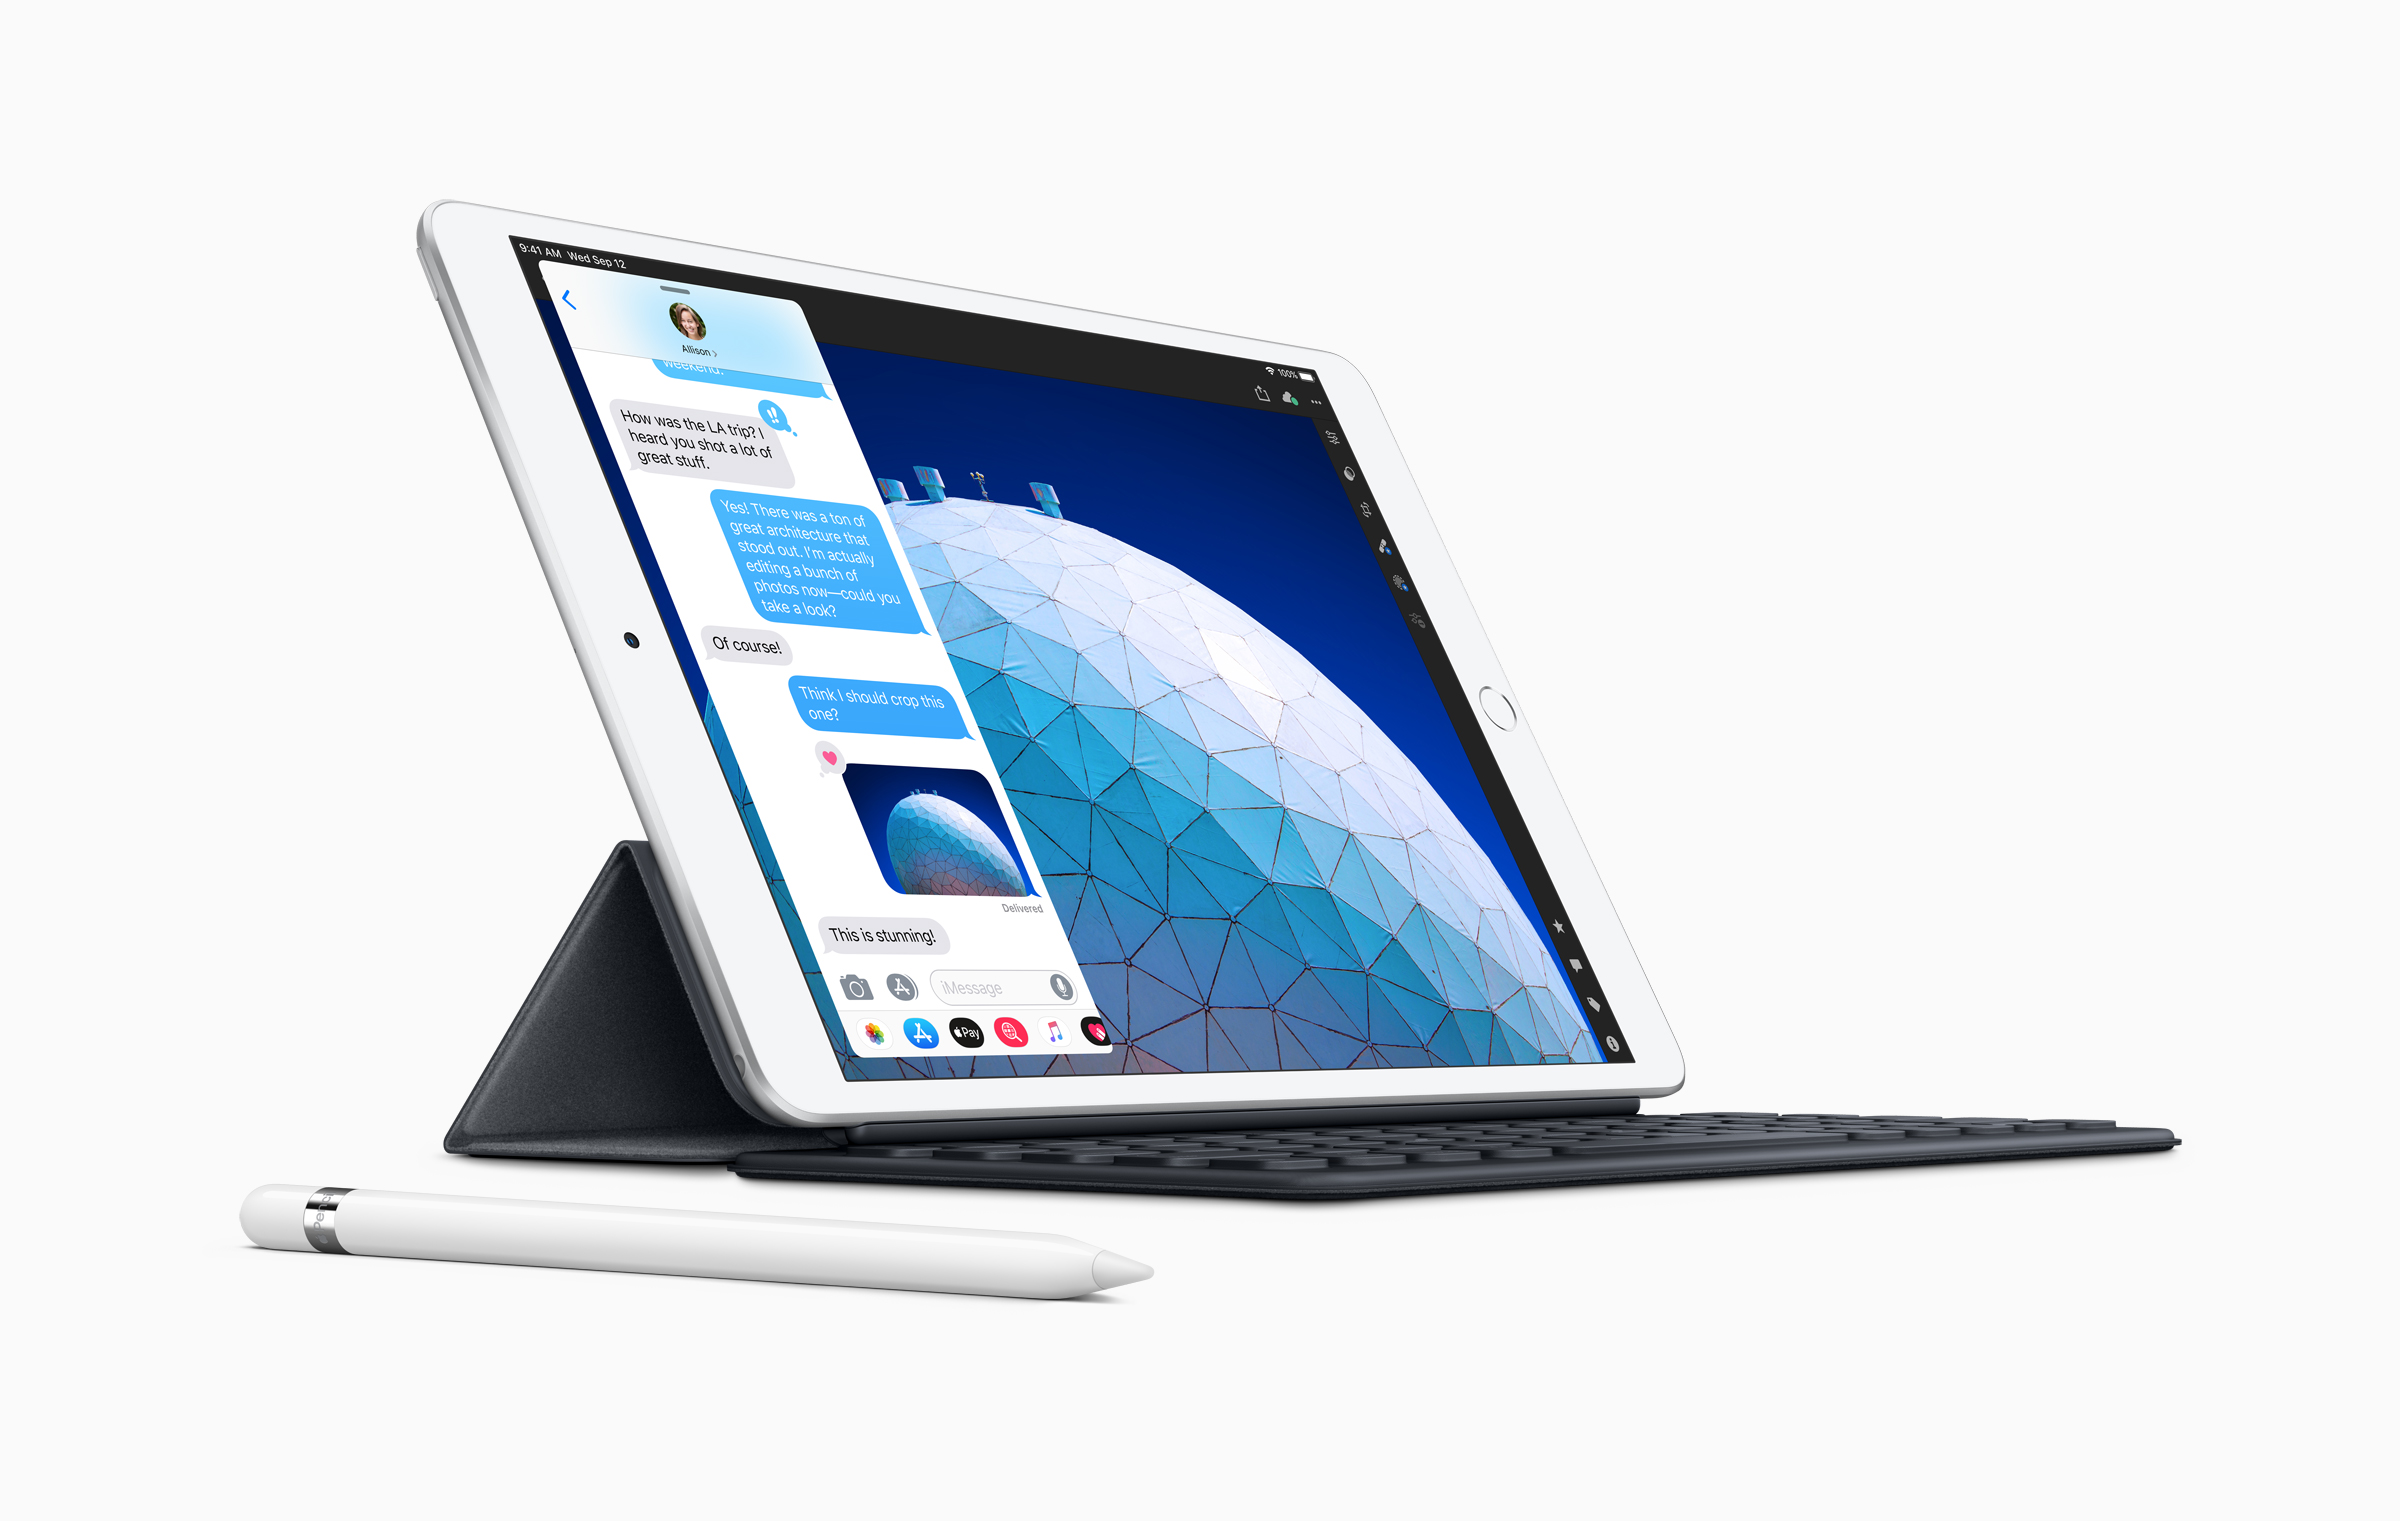 New iPad Air with Smart Keyboard and Apple Pencil